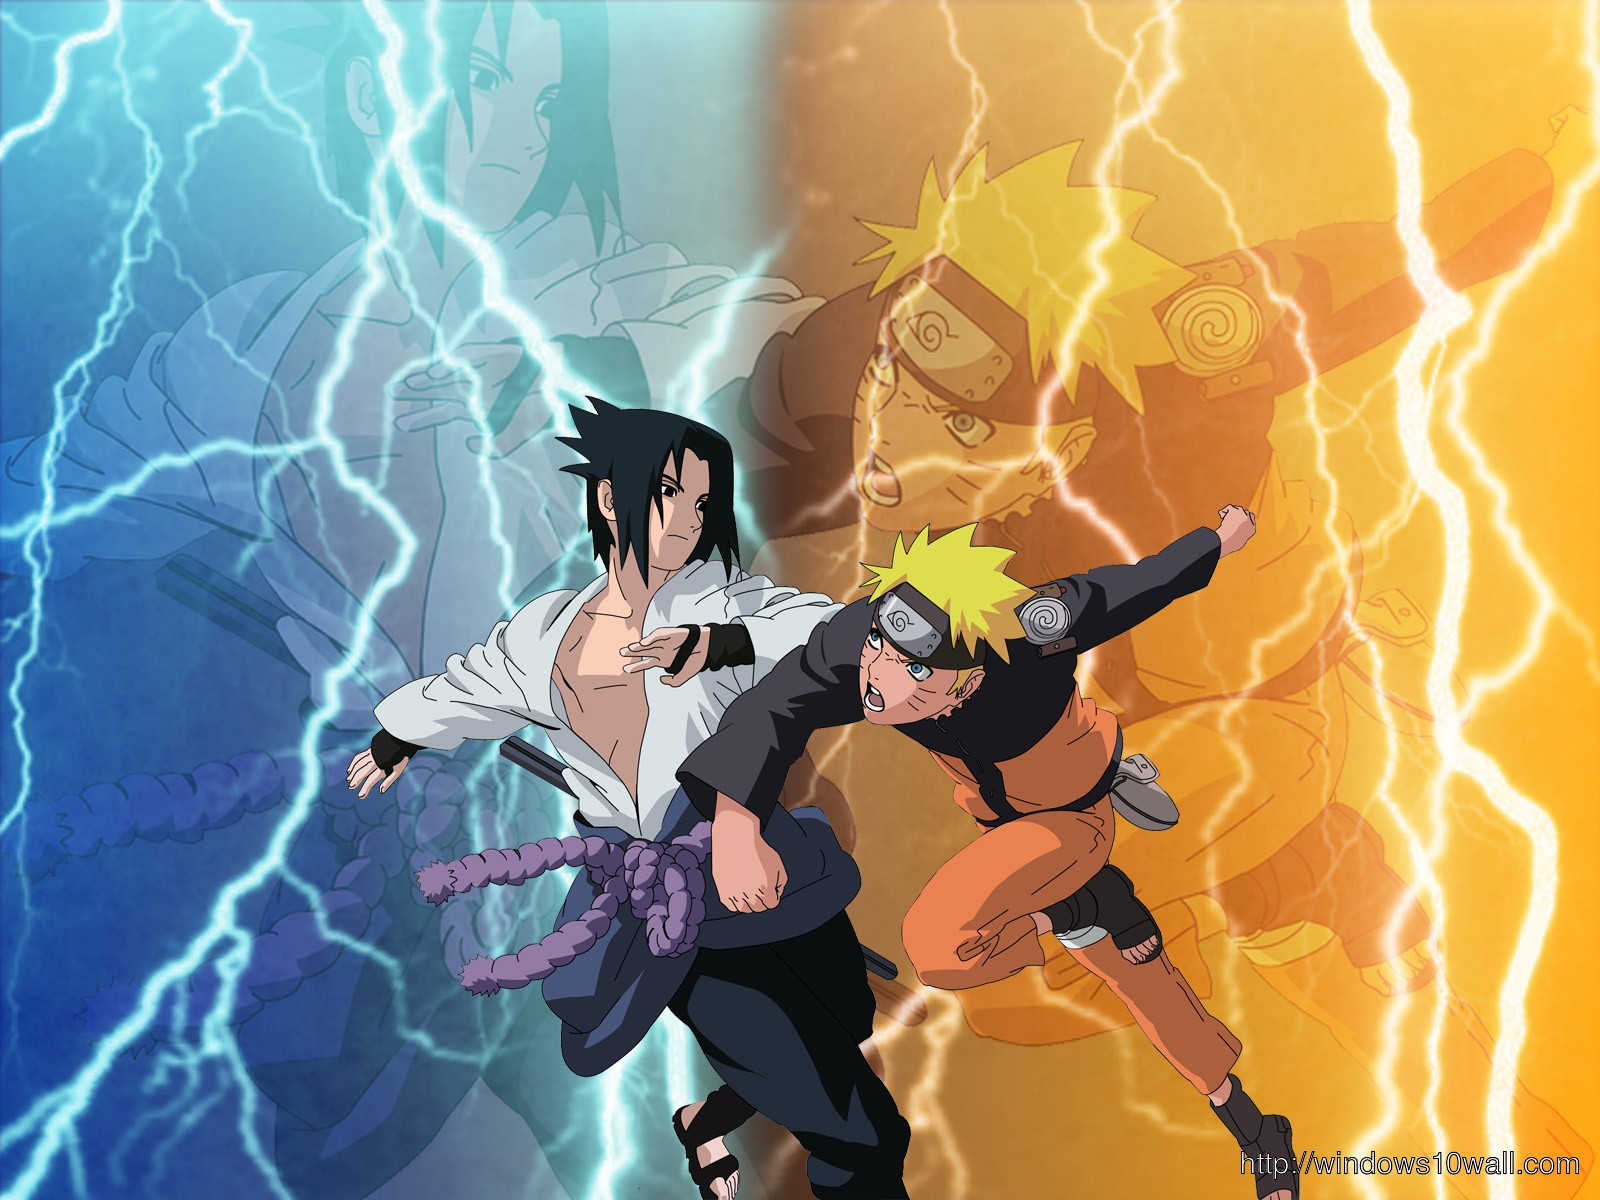 naruto-in-sage-mode-fighting-sasuke-wallpaper